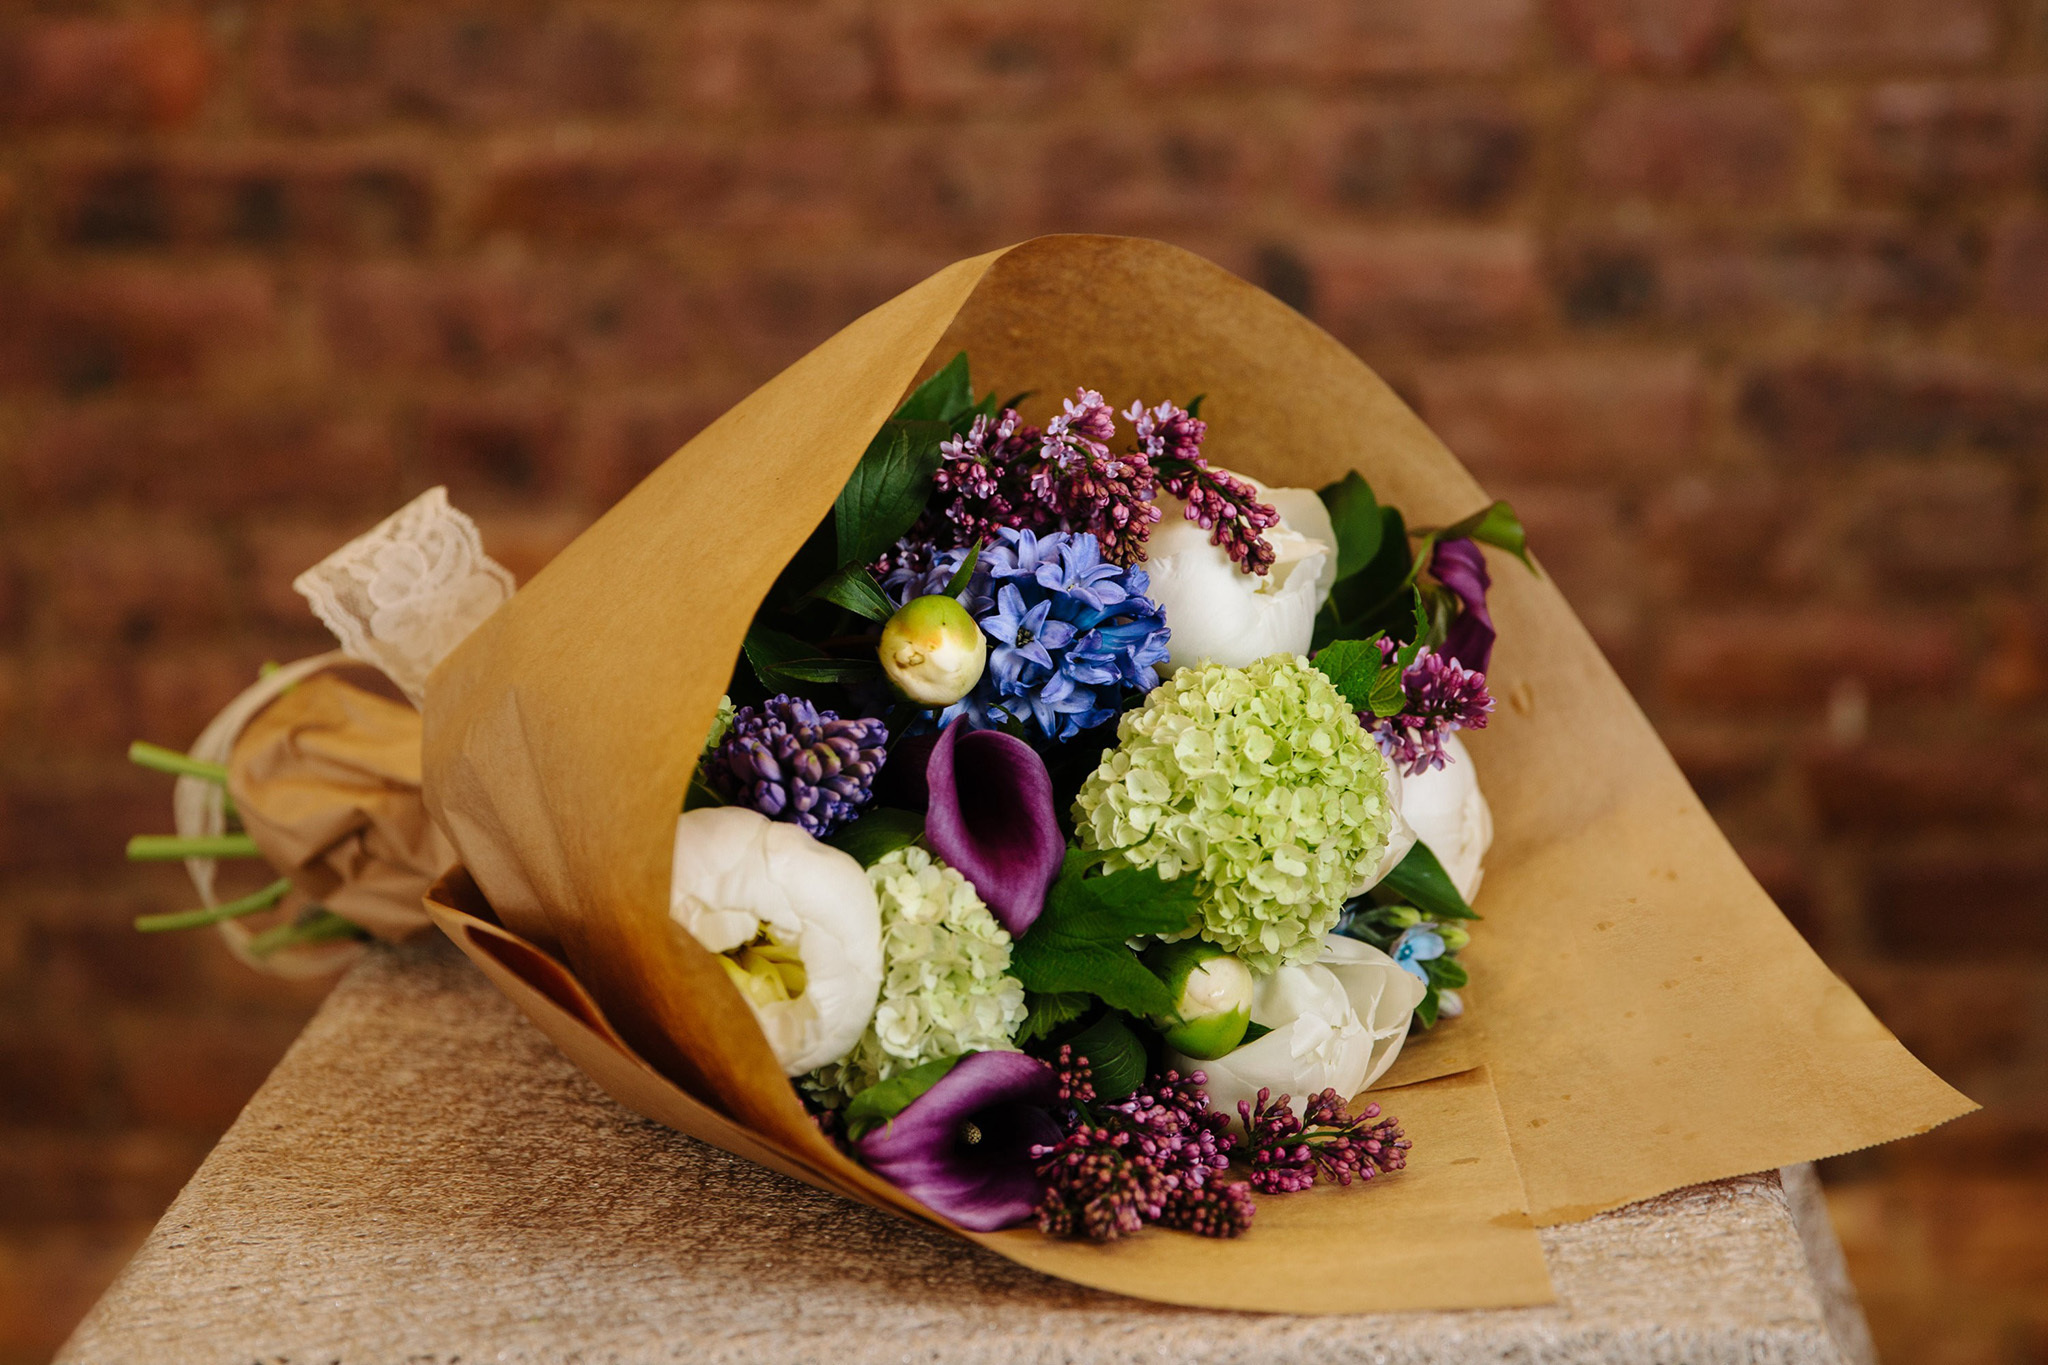 Best Options For Flower Delivery In NYC